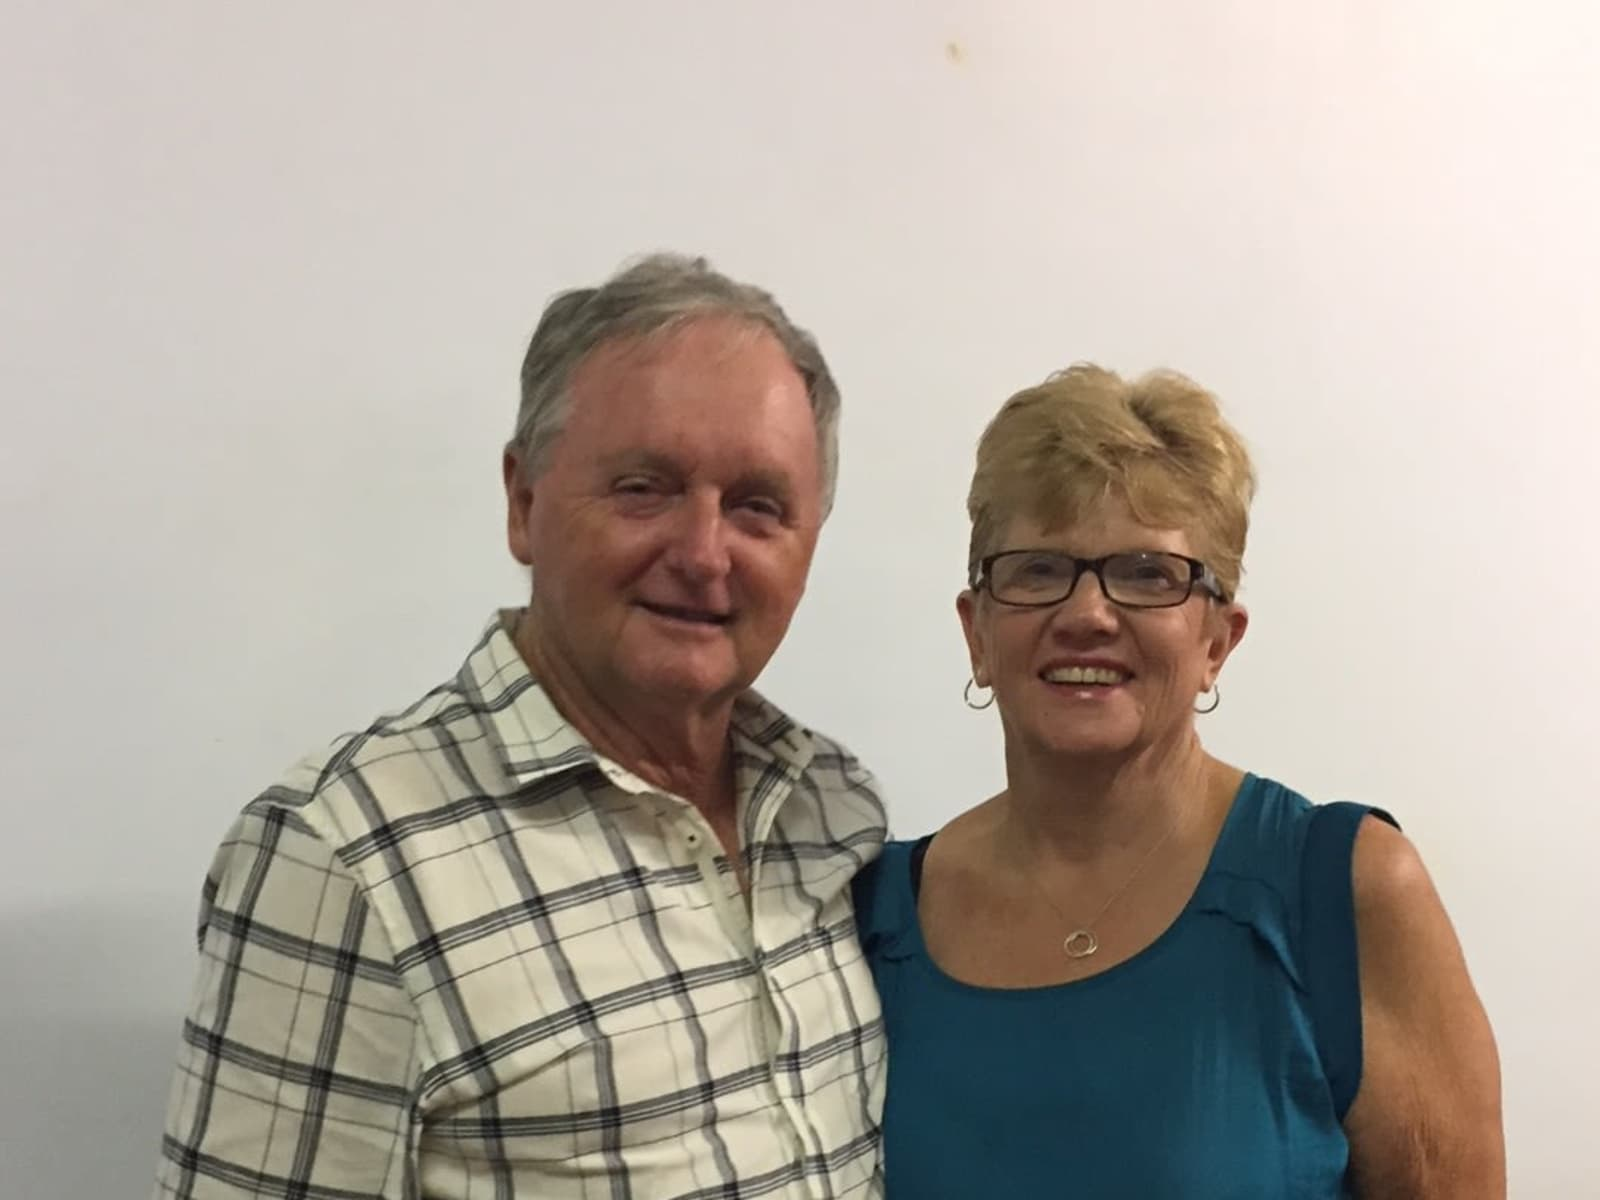 Julie & John from Tannum Sands, Queensland, Australia